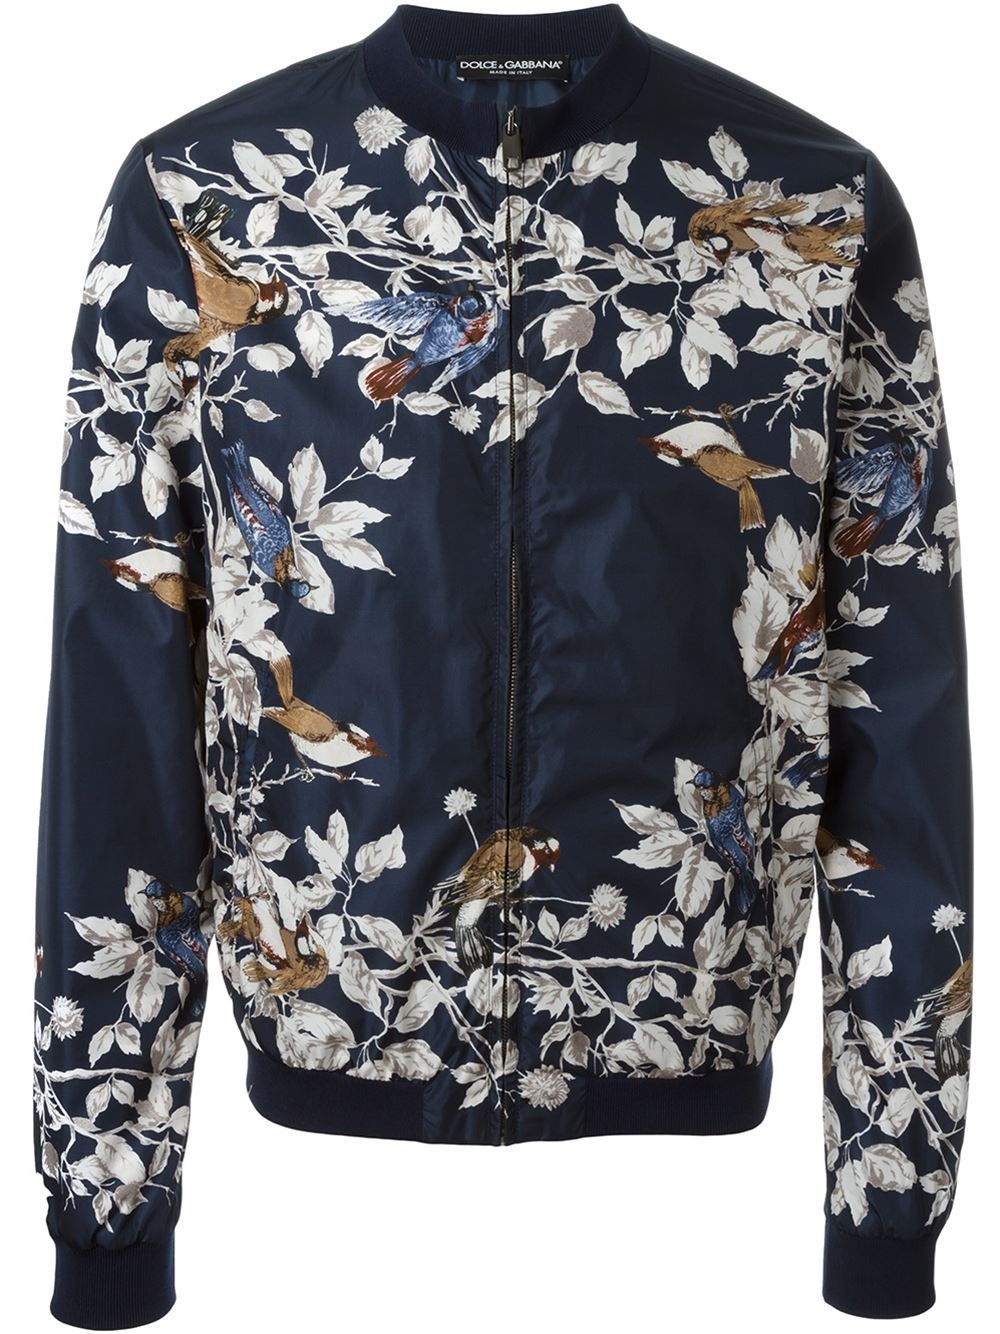 7970c8b23b36a TREND IMAGE# 3 This bomber jacket features a beautiful array of ...